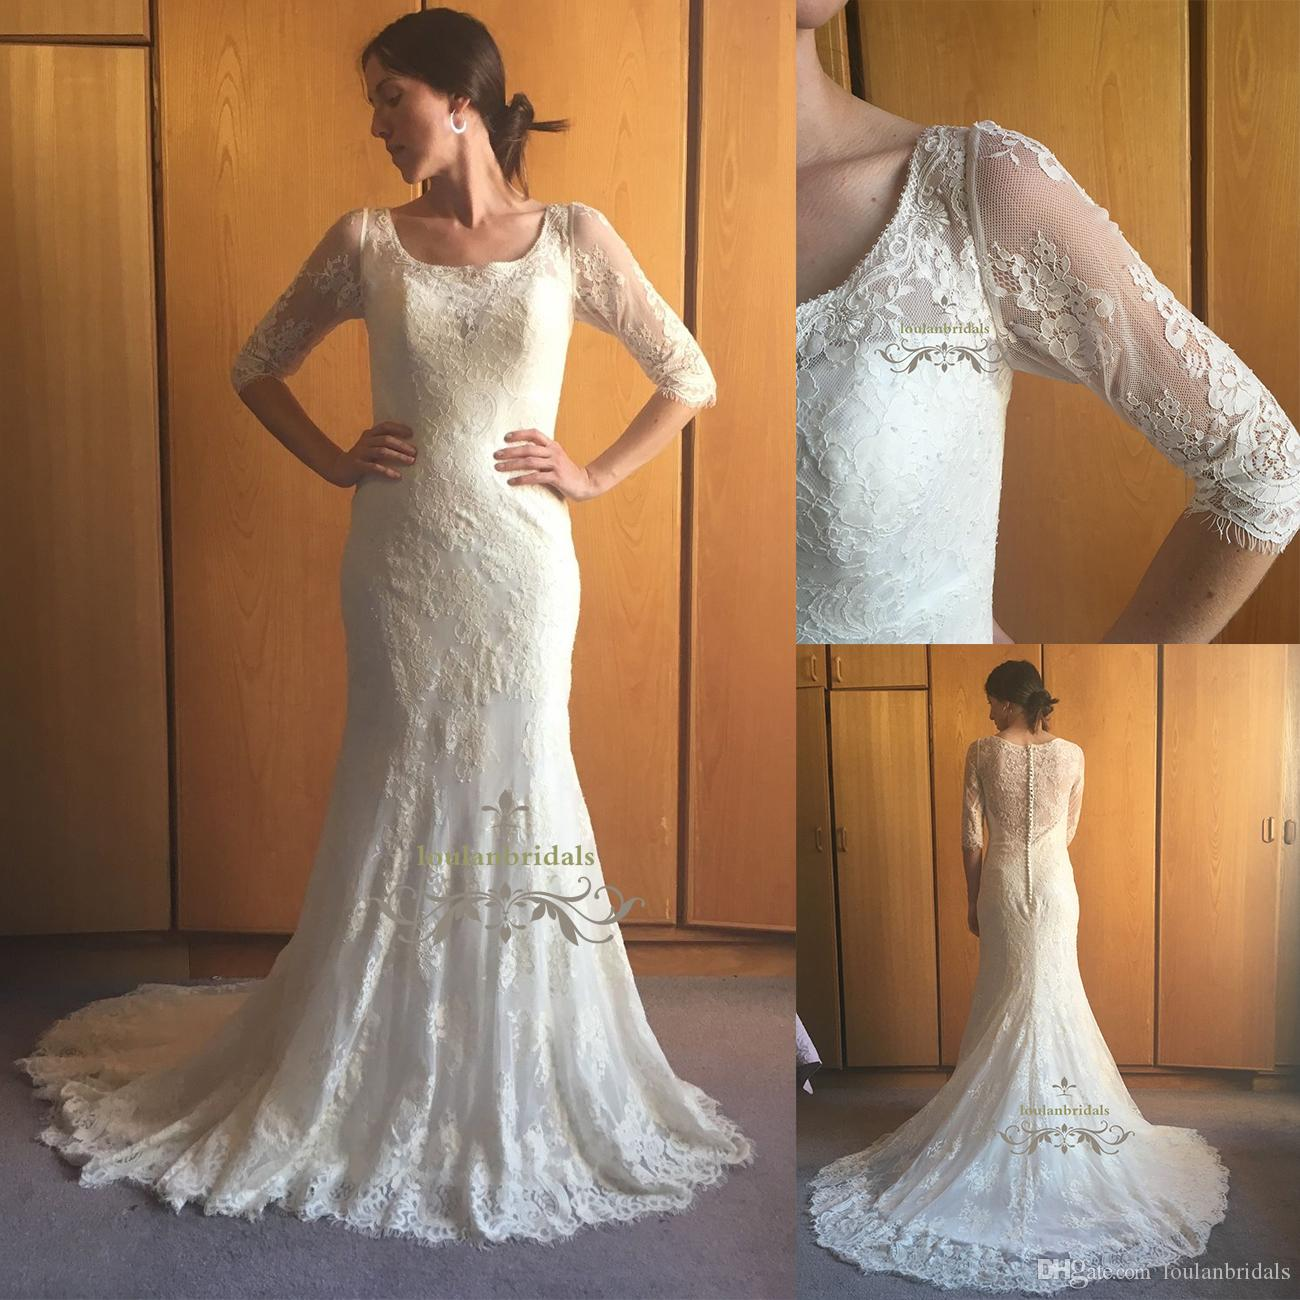 Stunning Lace Wedding Dress Satin Buttons Spine Neck Scalloped Train ...